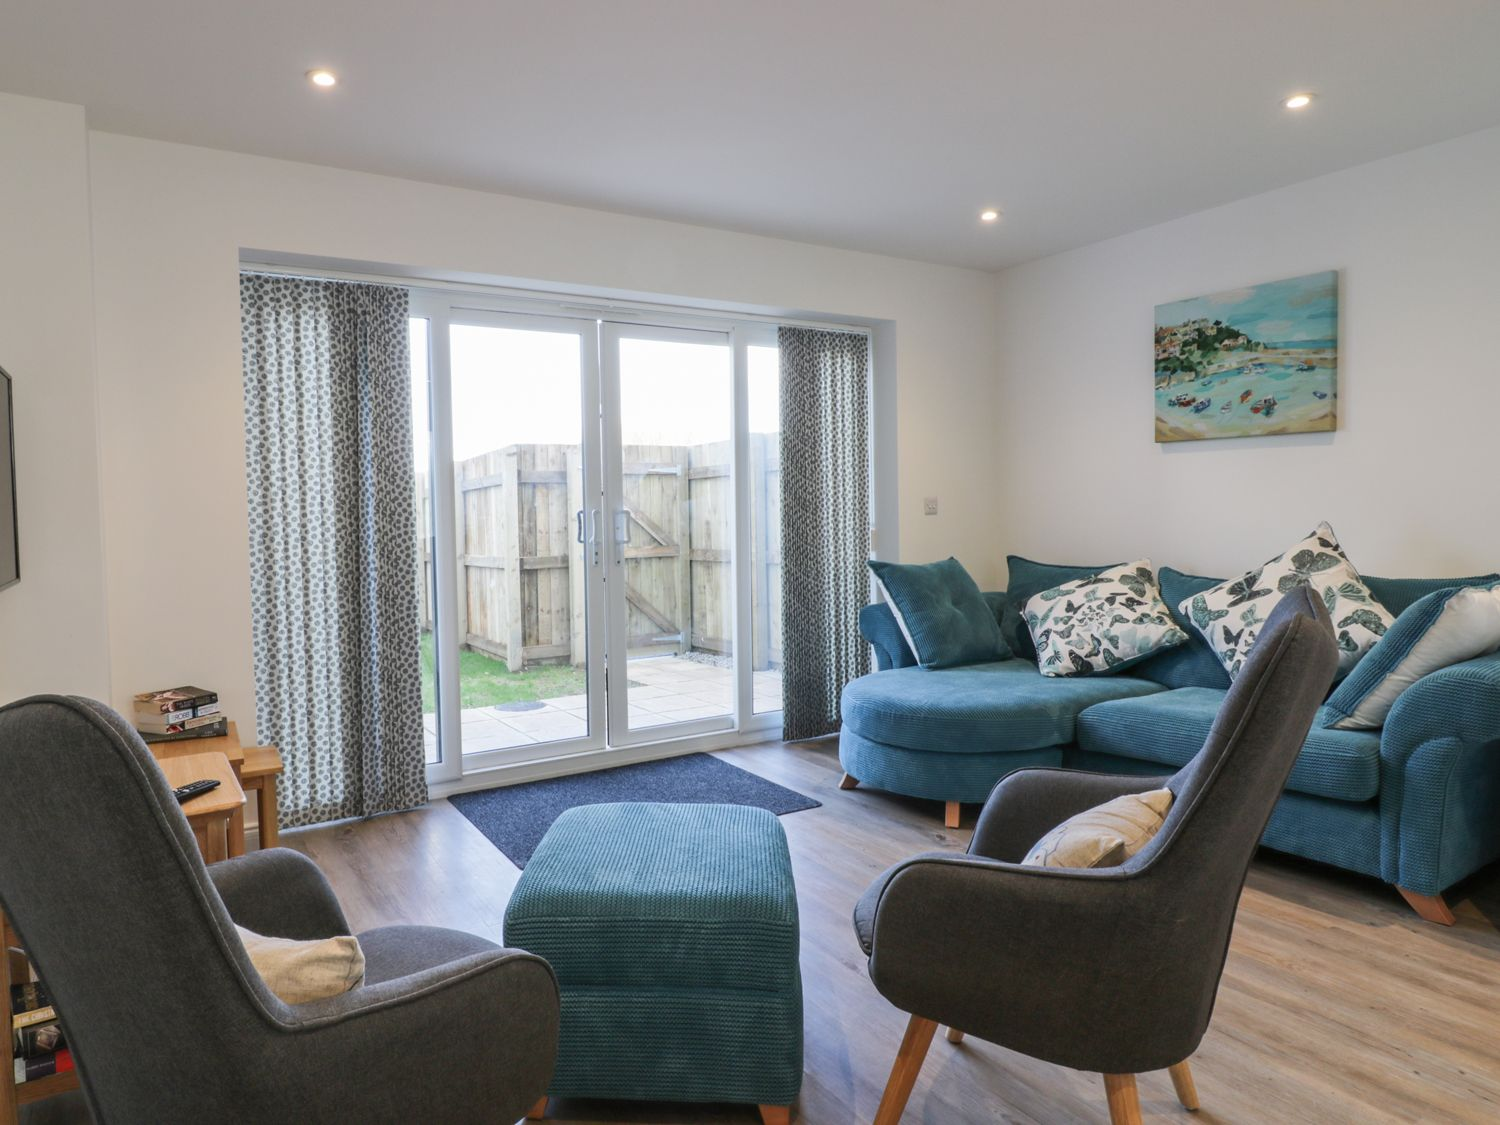 Fistral Breeze in Newquay - sleeps 6 people